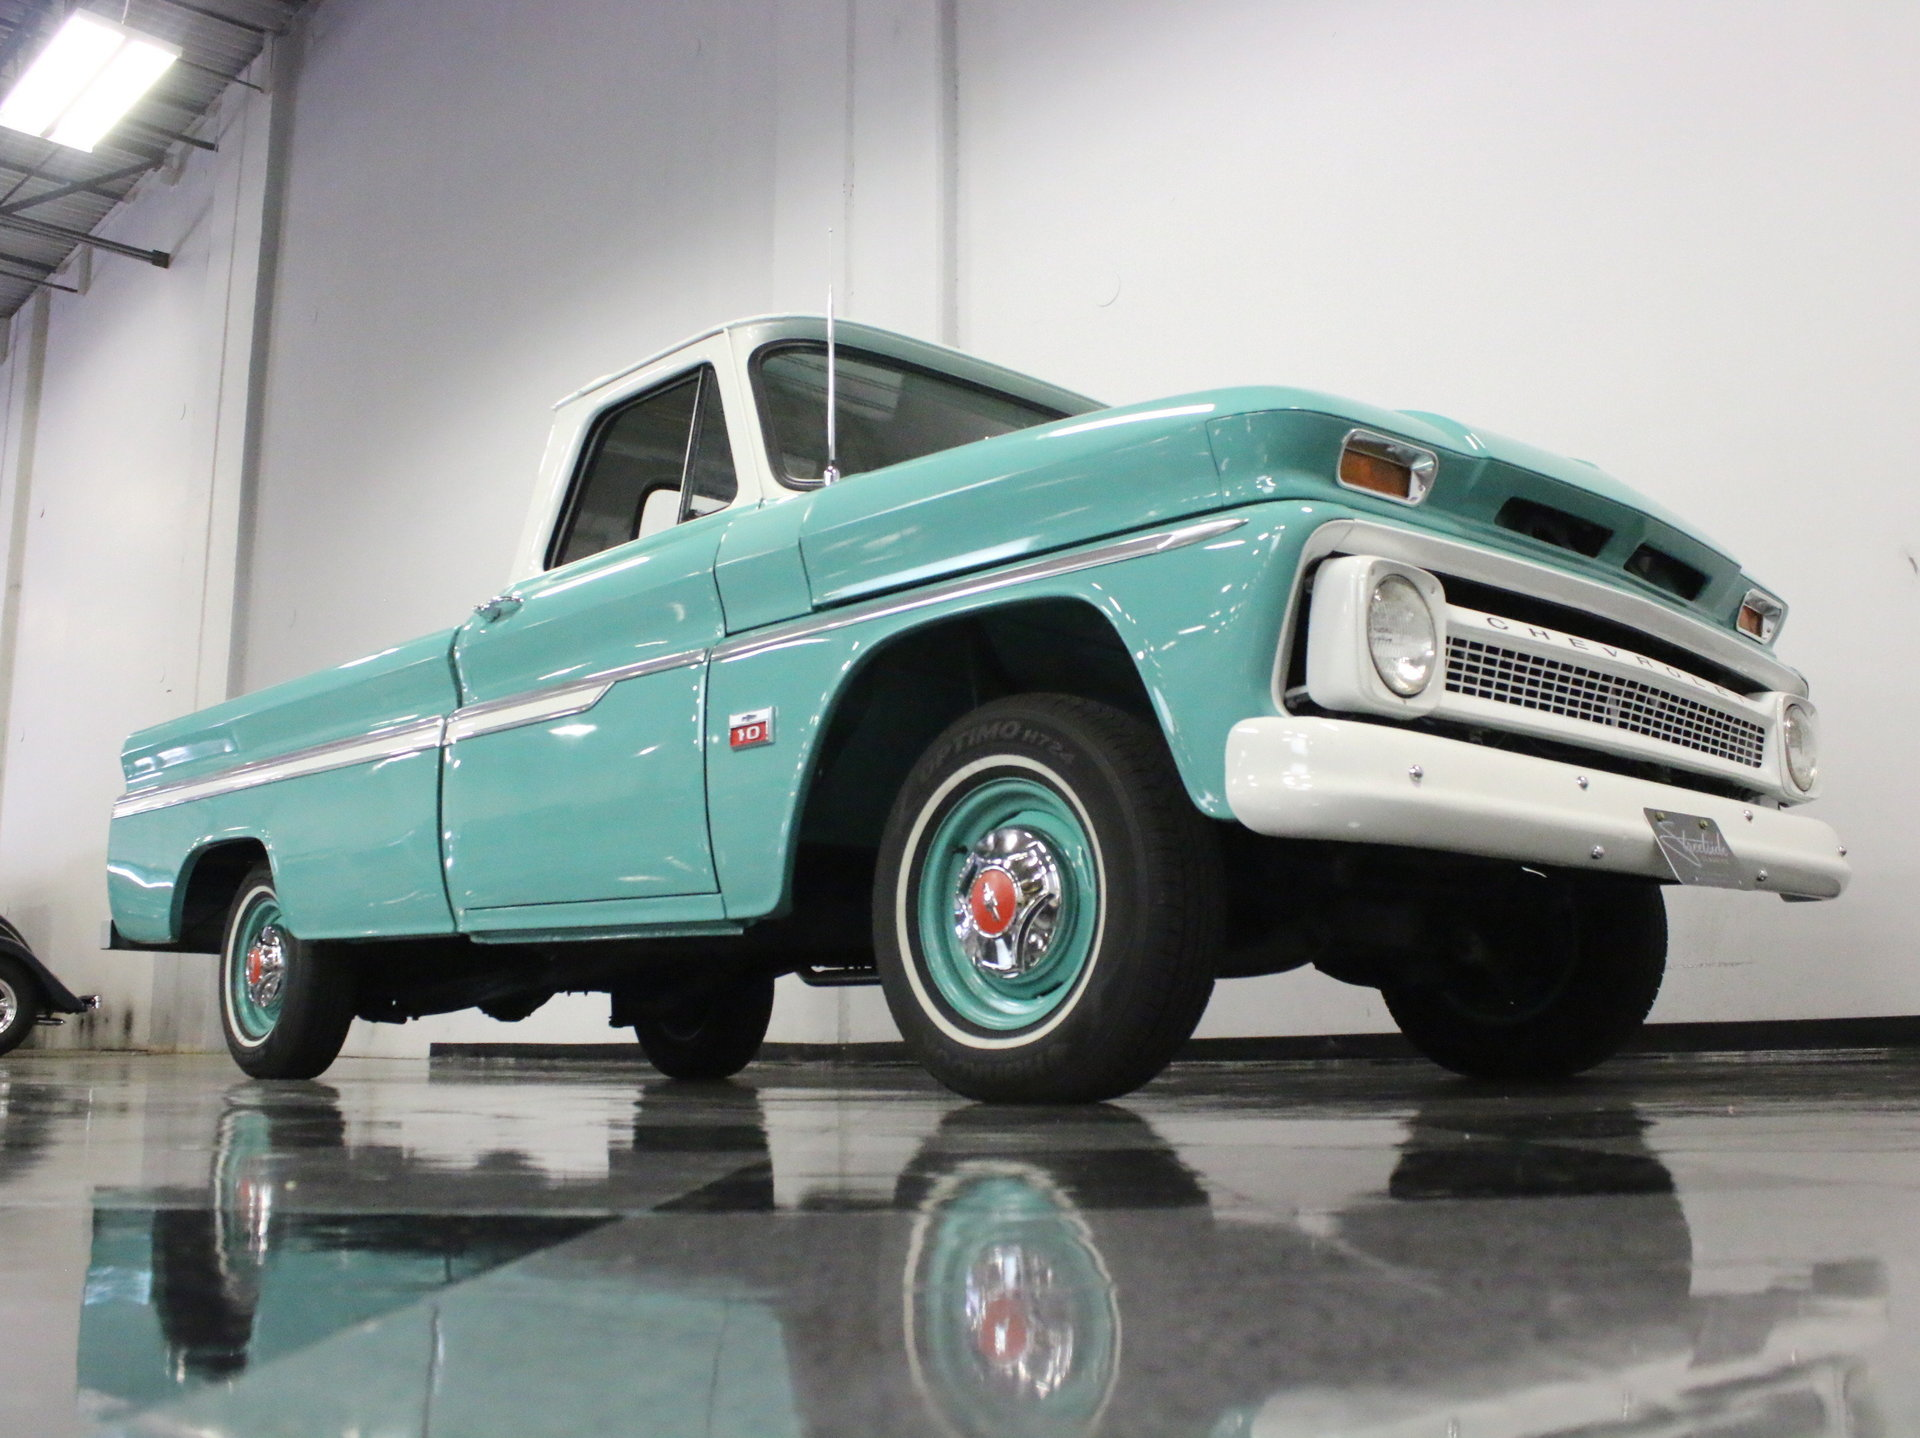 1966 Chevrolet C10 Streetside Classics The Nations Trusted 1964 Chevy Truck Paint Colors Show More Photos